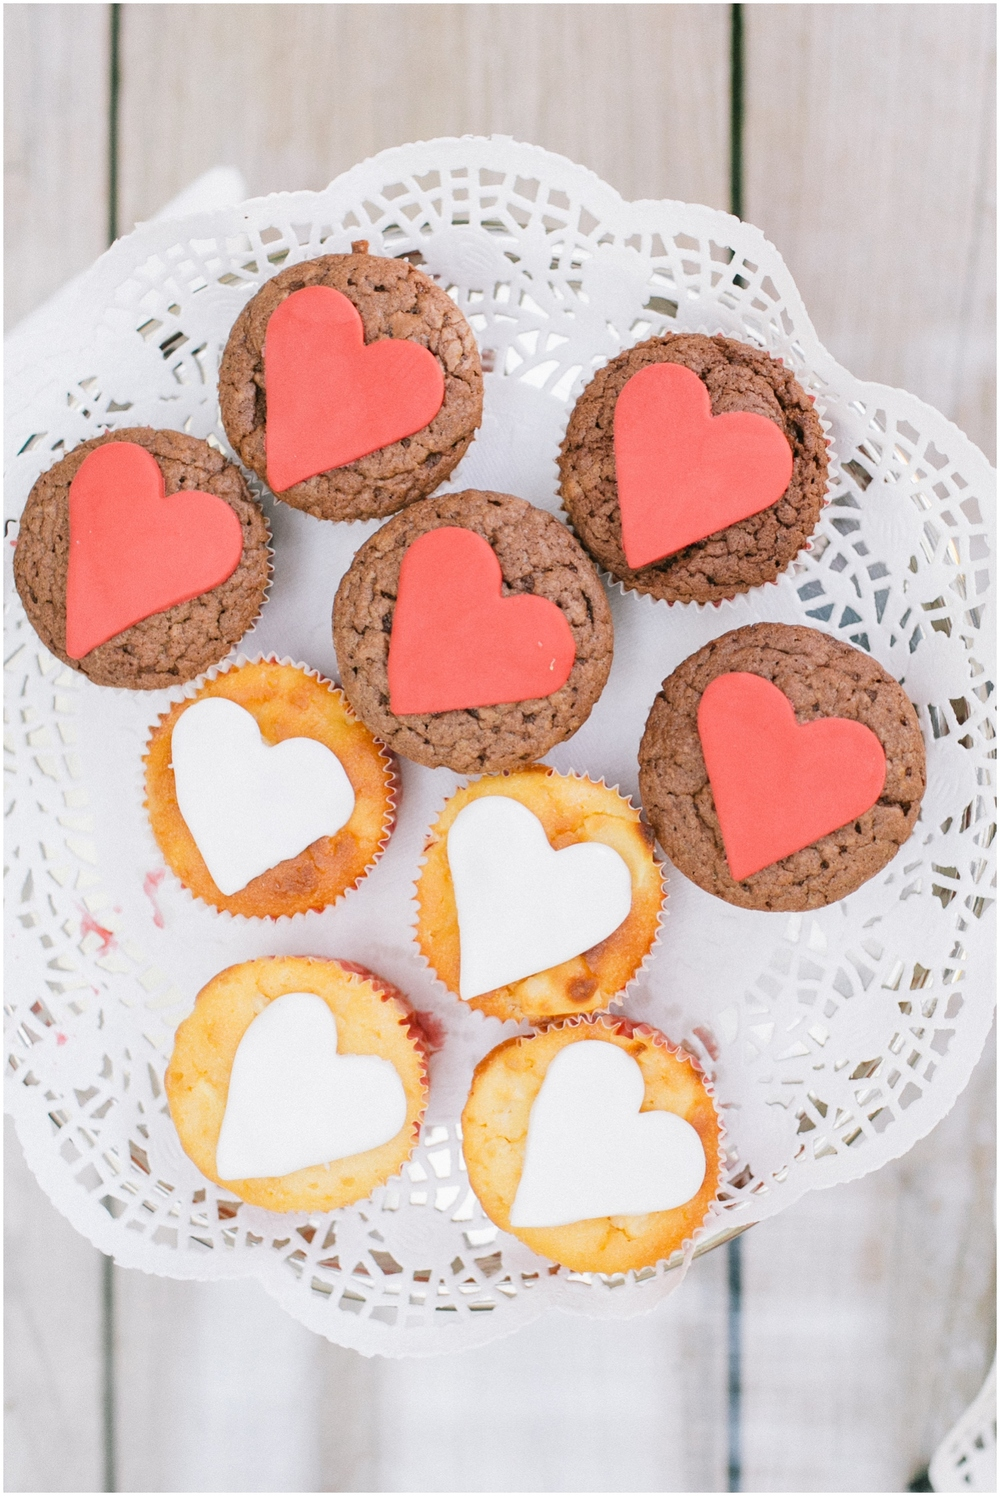 Cupcakes at wedding with hearts